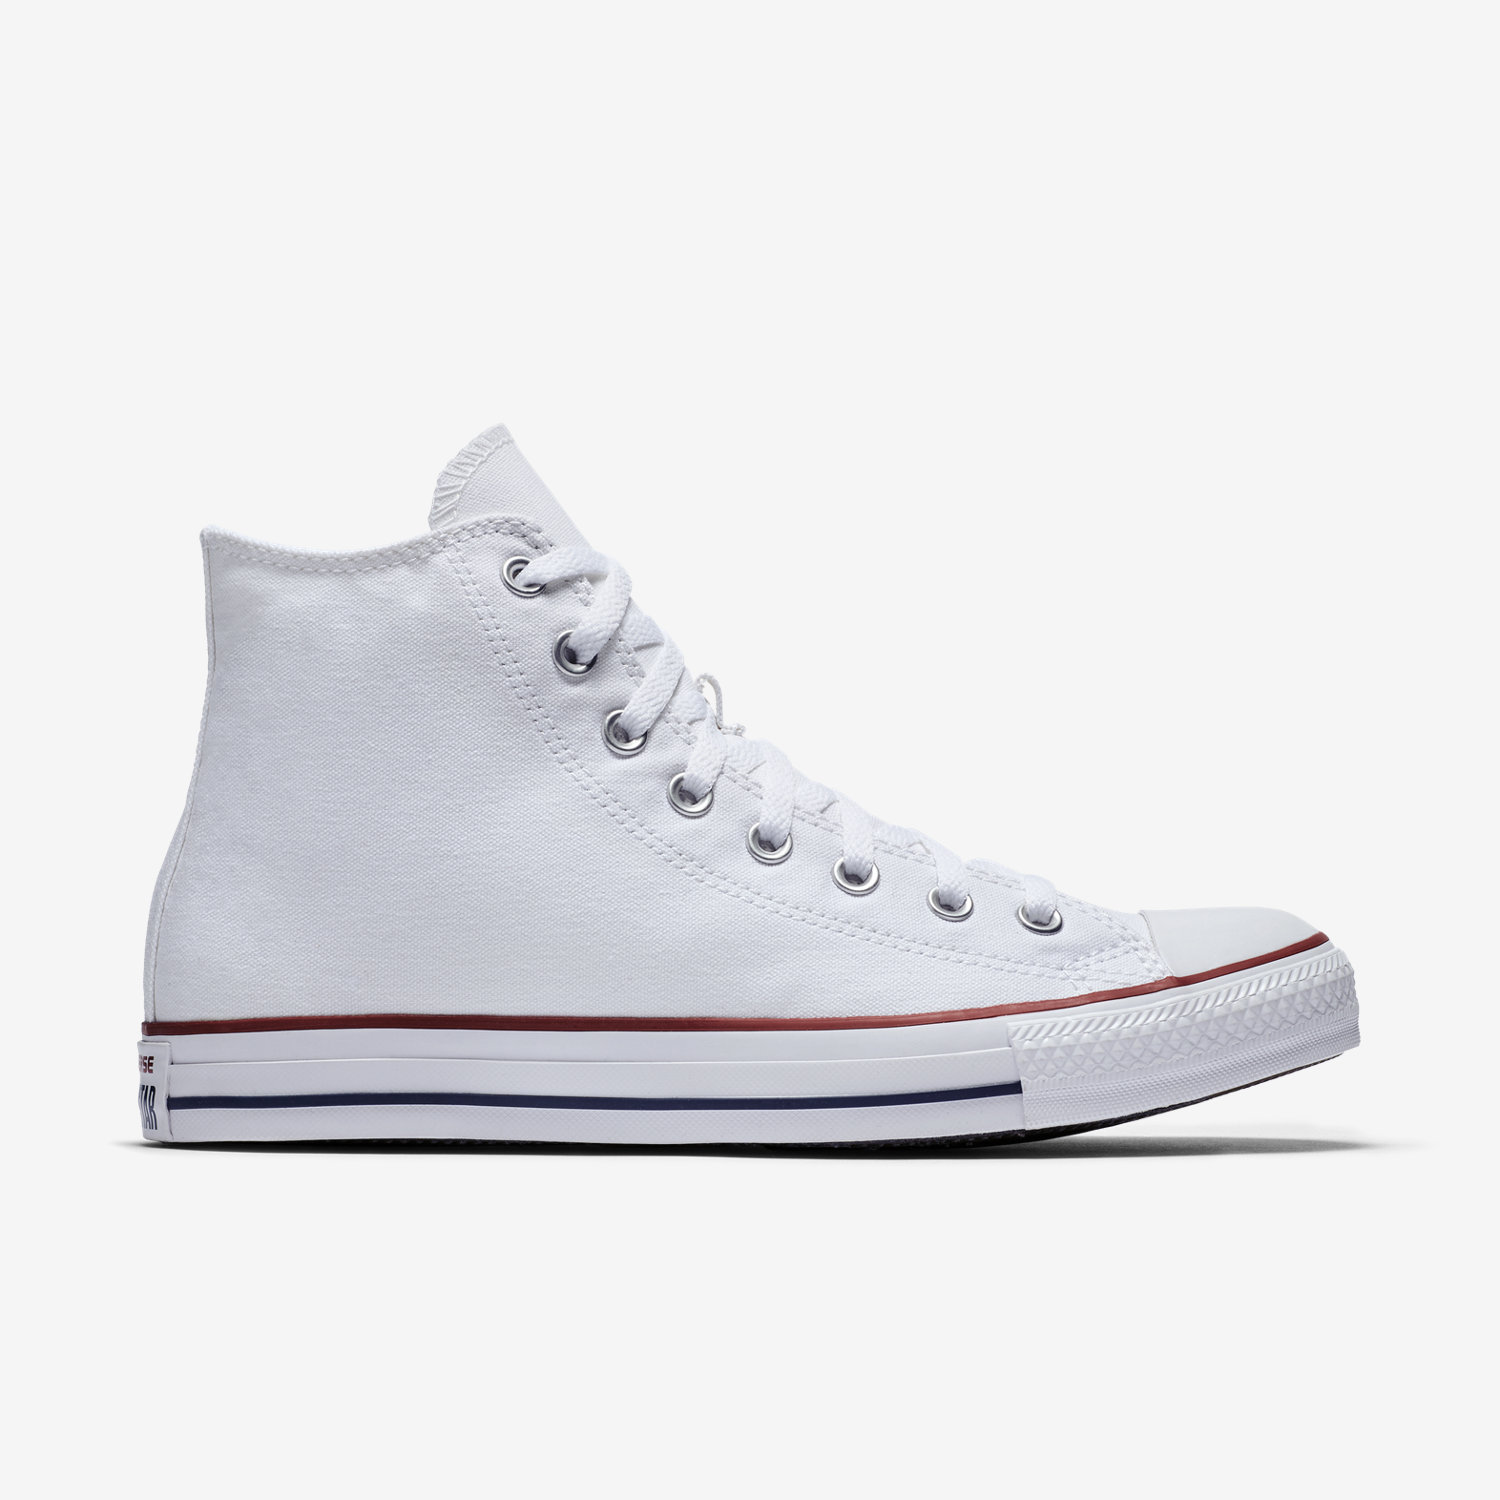 Factory Direct Converse Chuck Taylor All Star Lo Leather